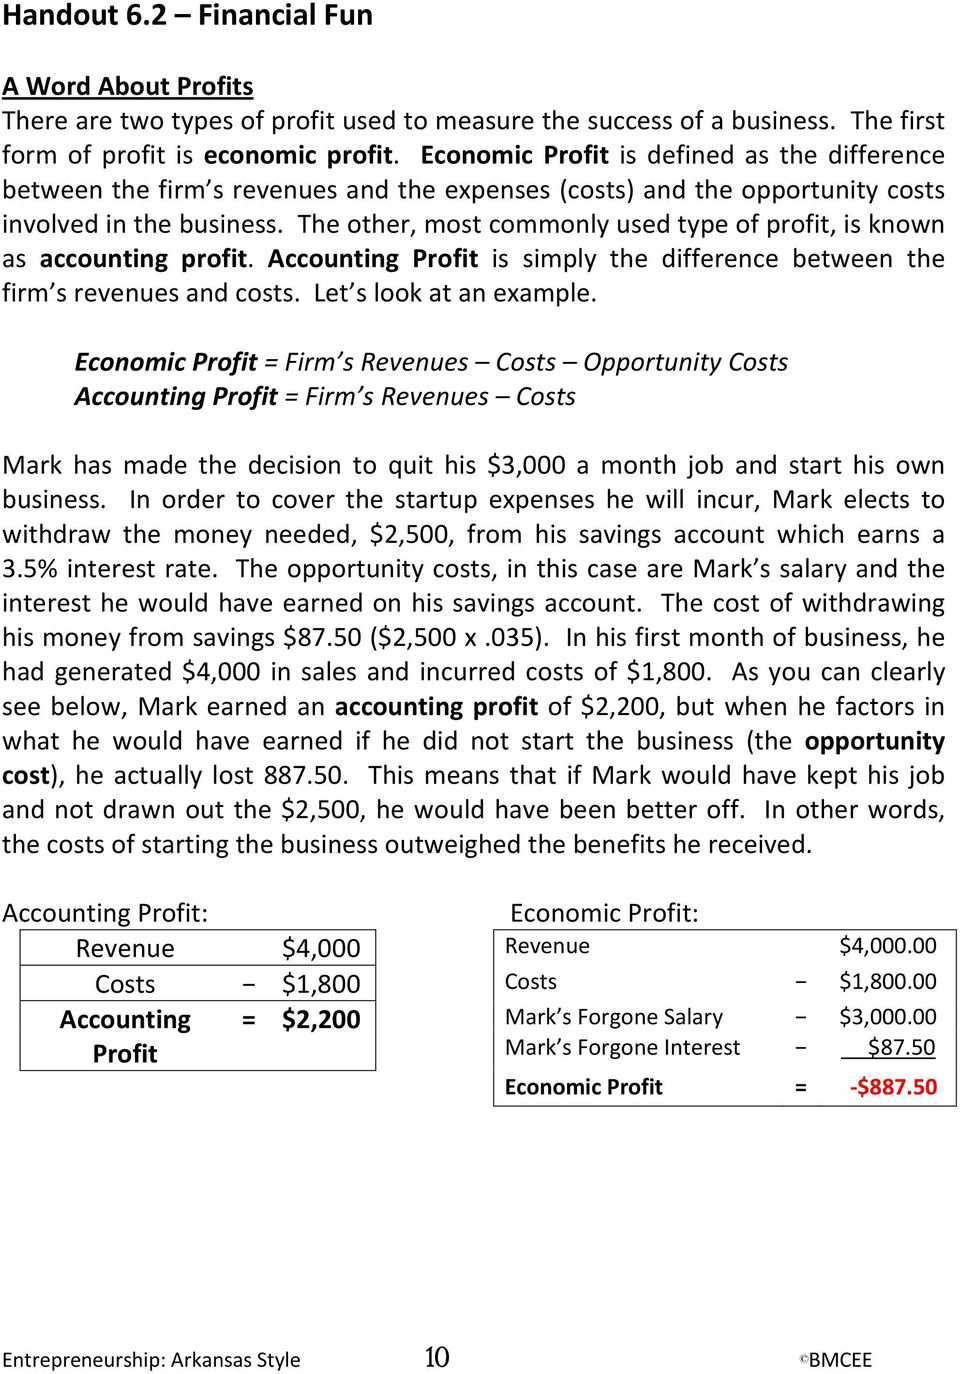 The other, most commonly used type of profit, is known as accounting profit. Accounting Profit is simply the difference between the firm s revenues and costs. Let s look at an example.